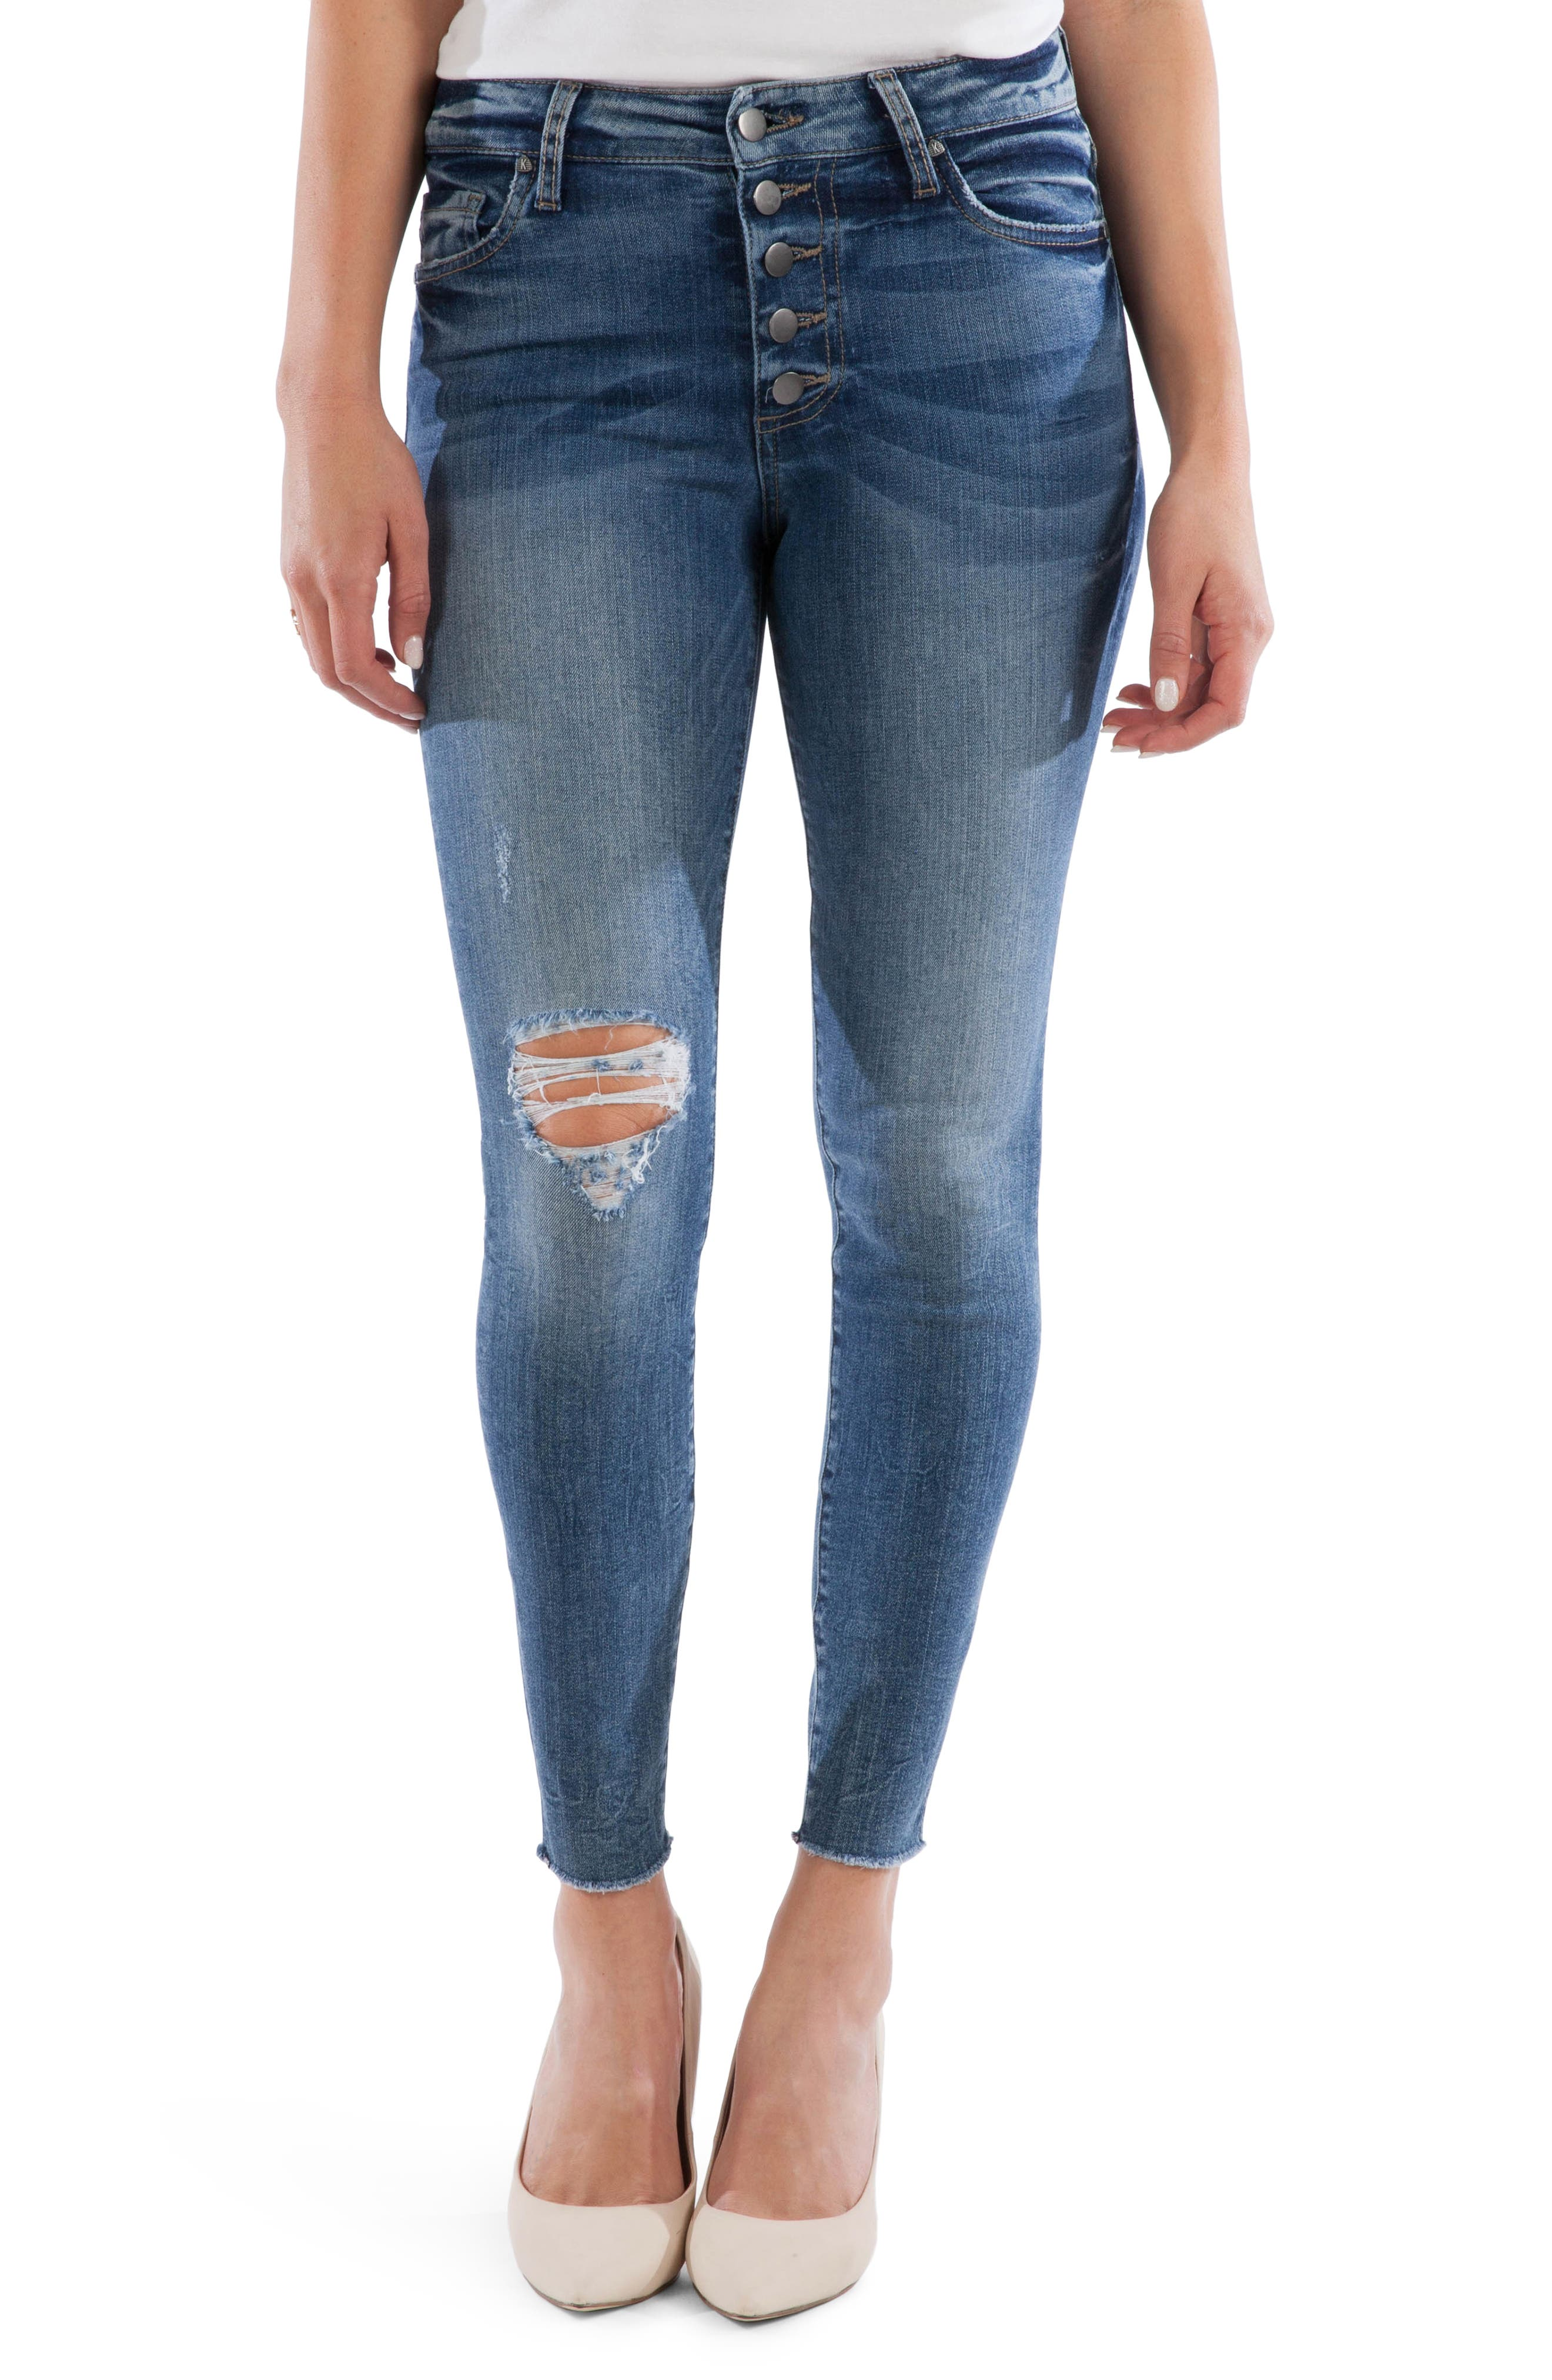 435eb9b1875b Women's High-Waisted Jeans   Nordstrom